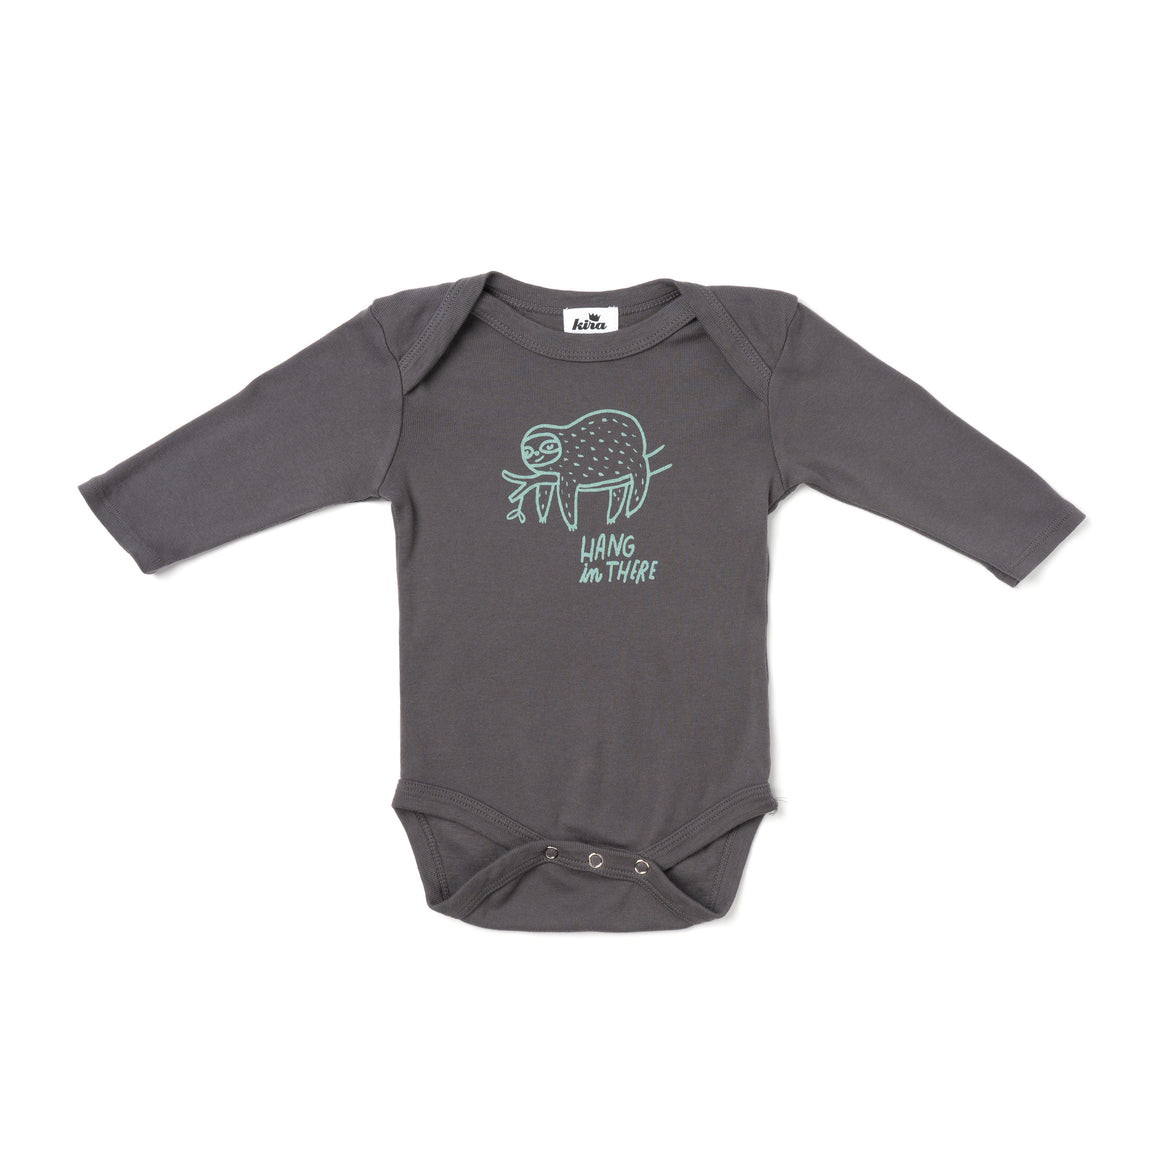 Hang in There Graphic Onesie, Long Sleeve, Slate